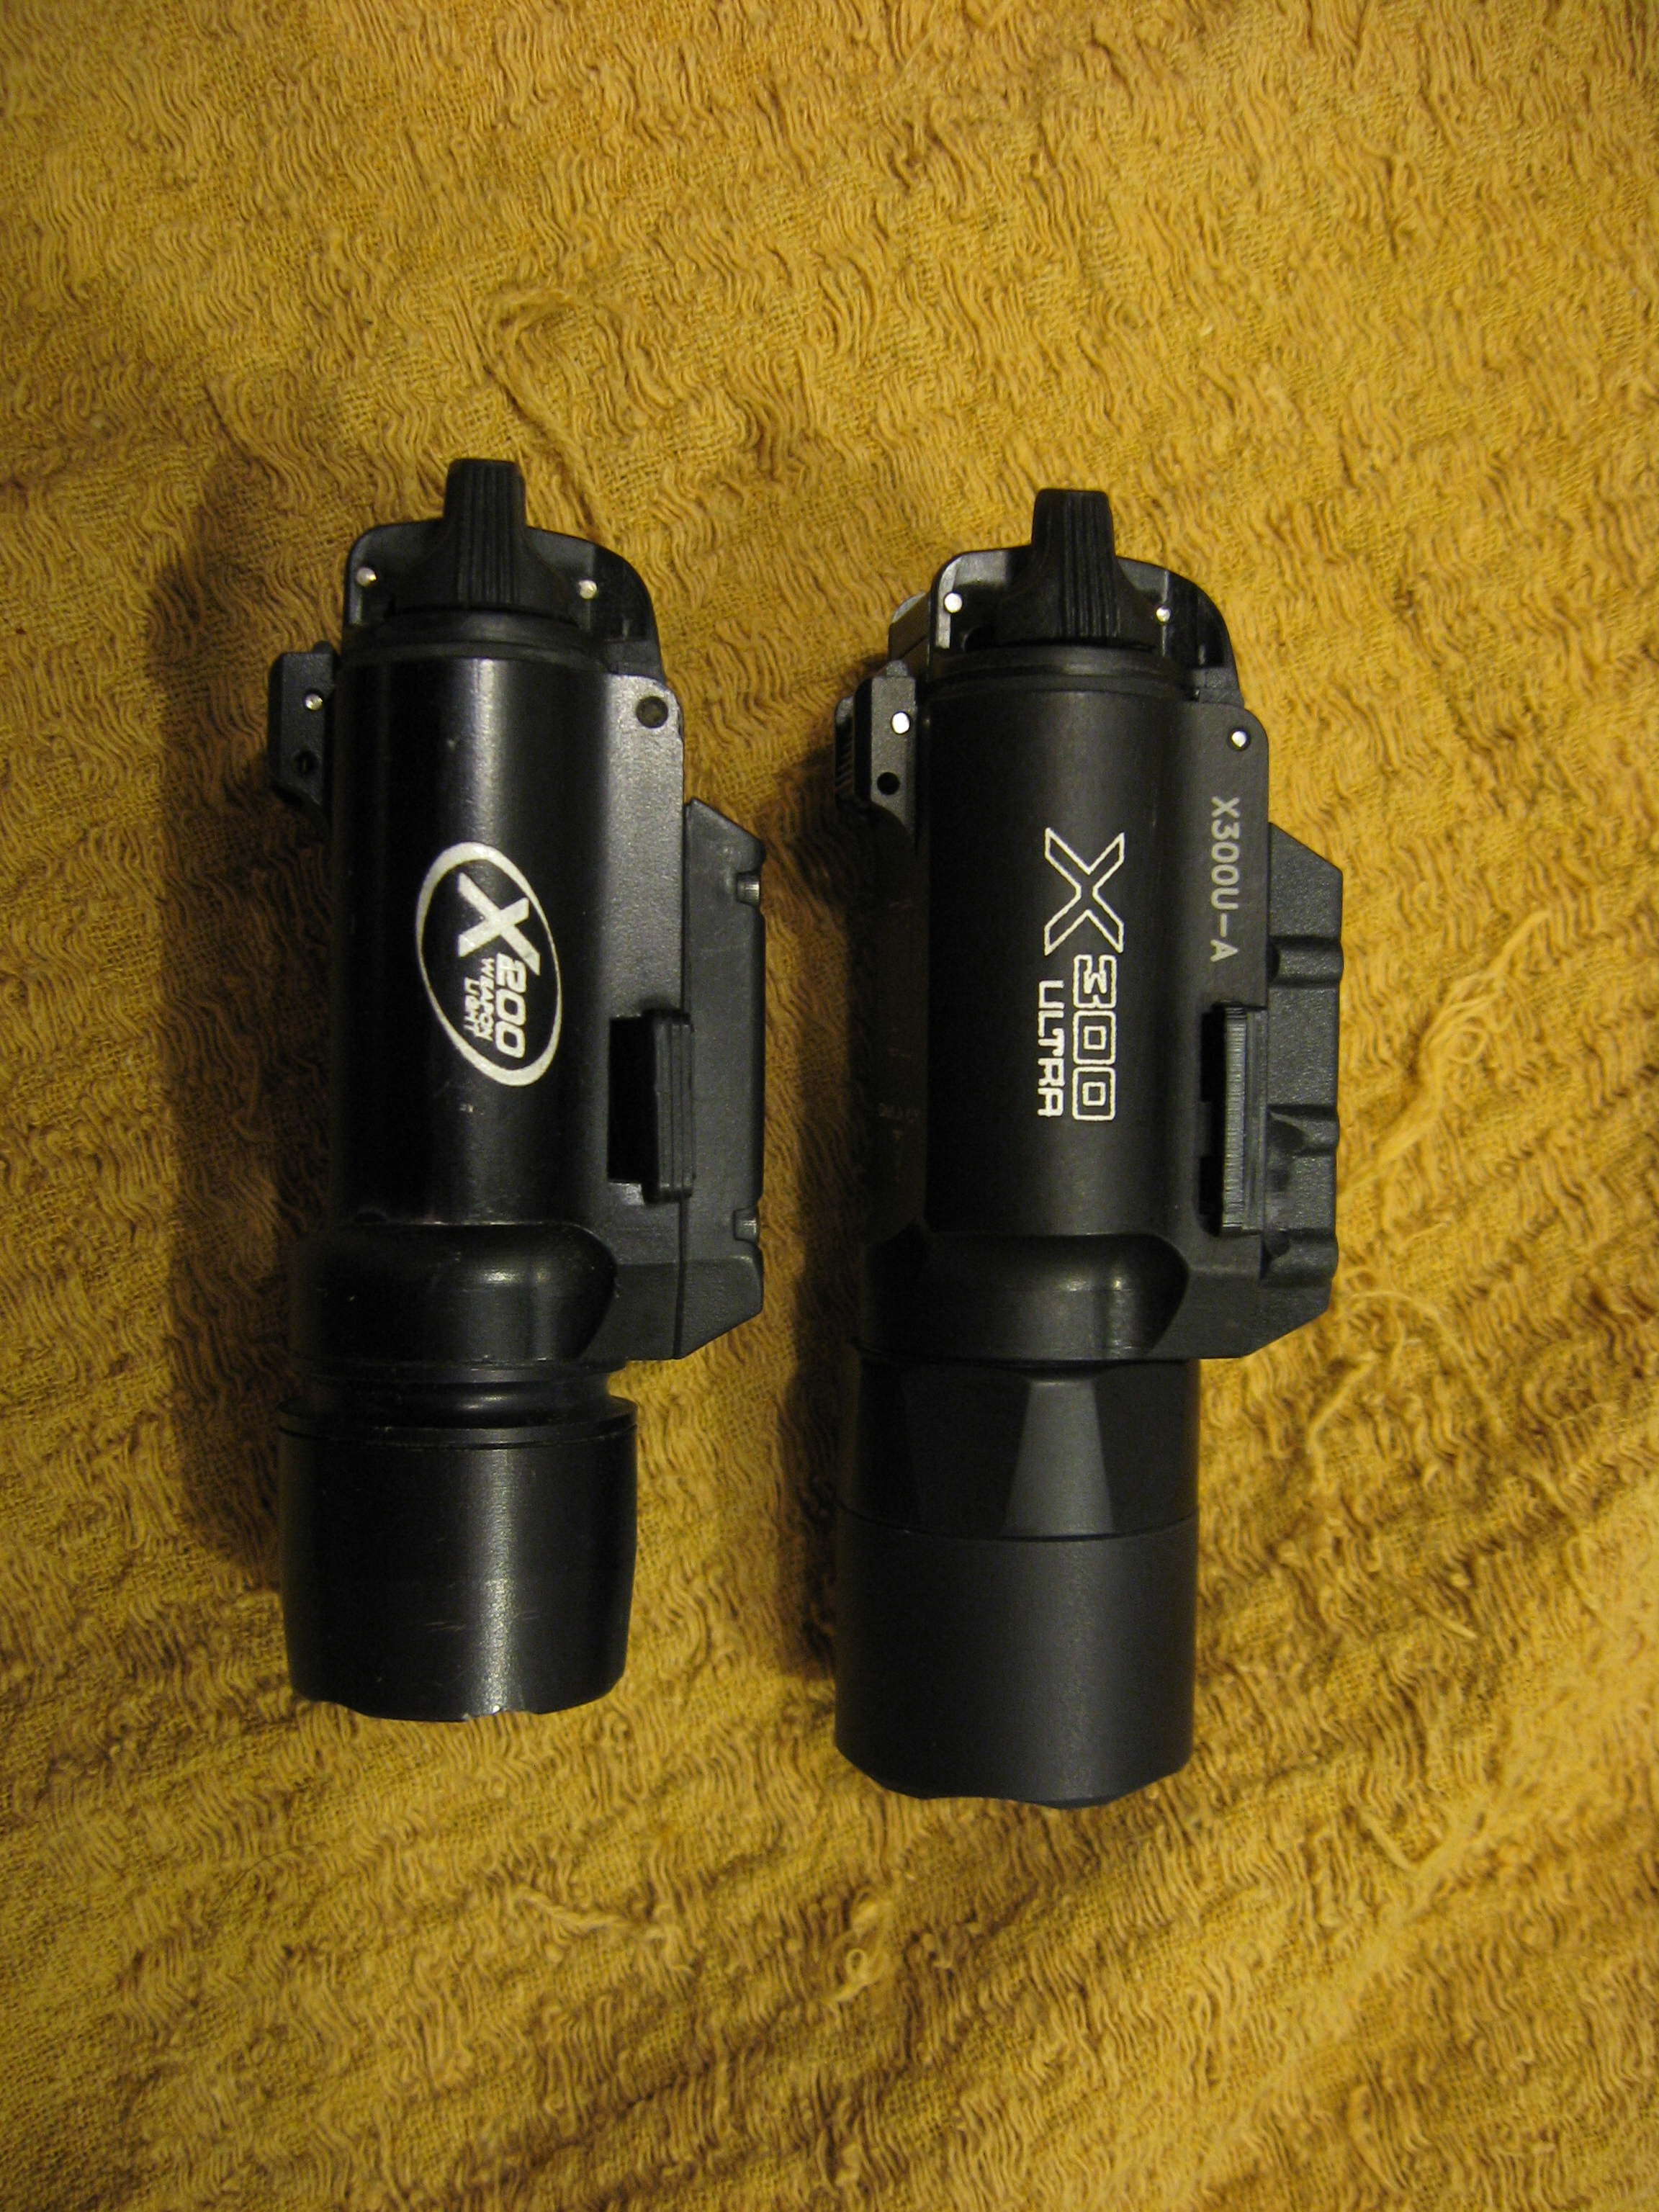 SureFire X300 Ultra Review - BlackSheepWarrior.Com